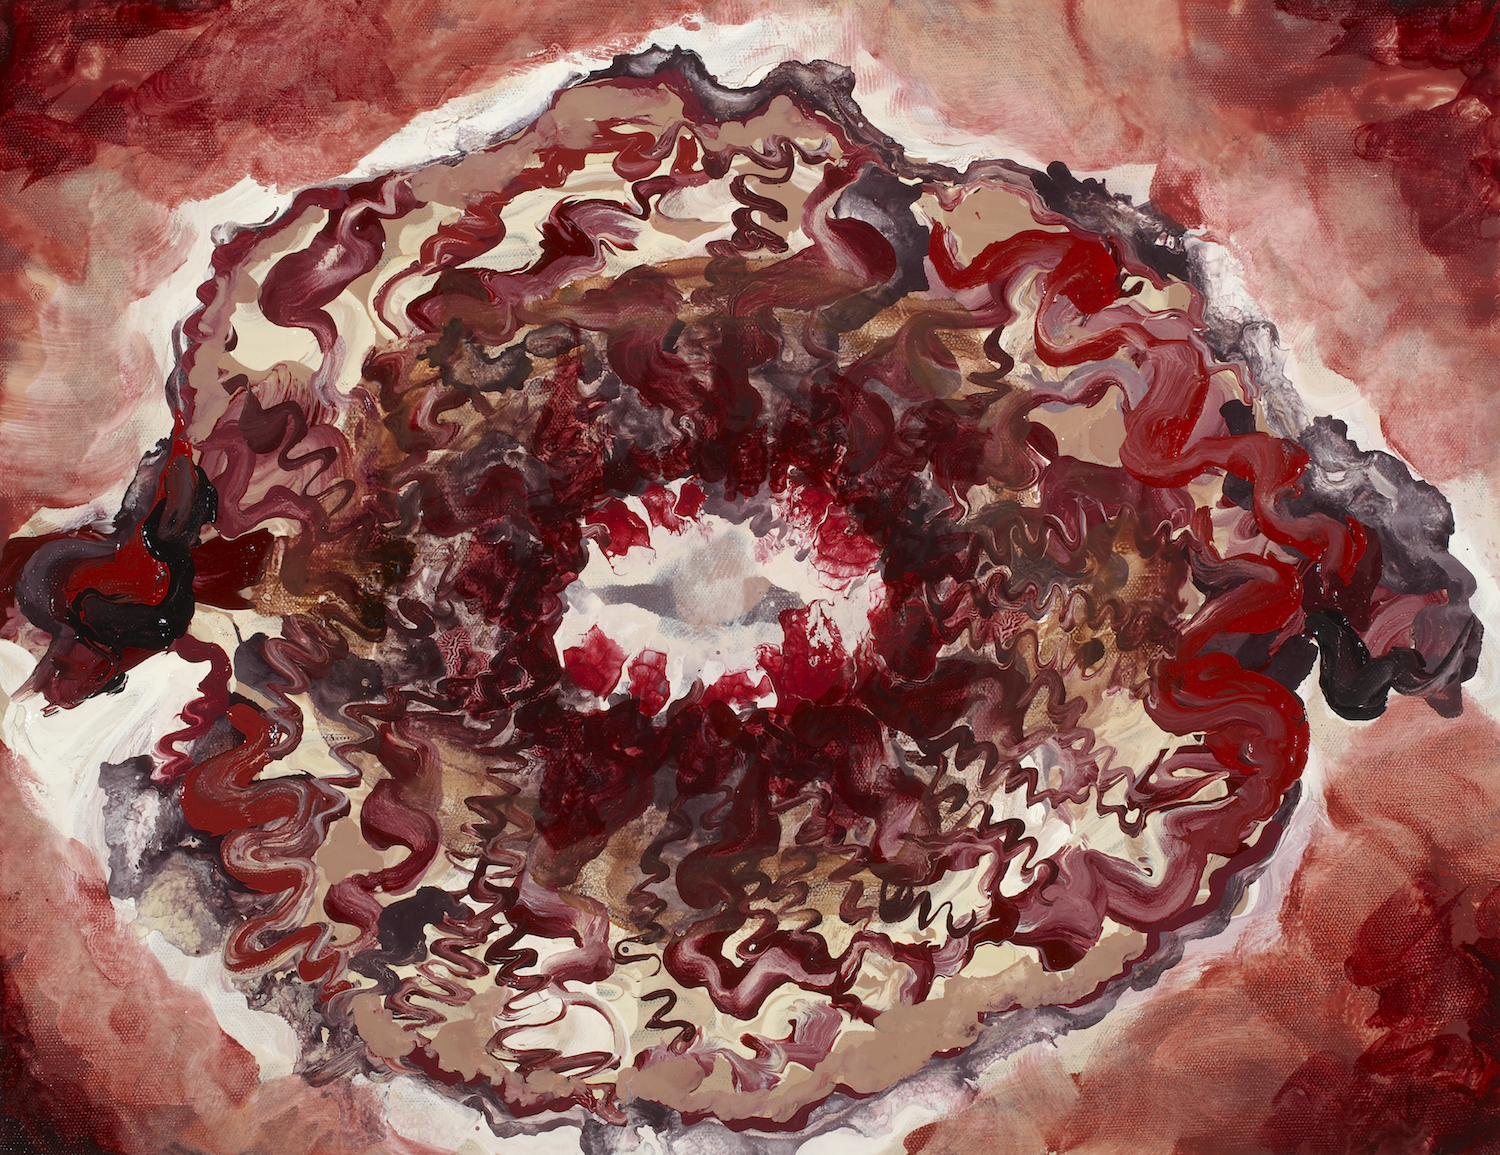 Lynn Parotti's 'The Blastocyst's Ball: Crinone's Crave' (2008), oil on canvas, 13 x 17 (3). Part of the National Collection.